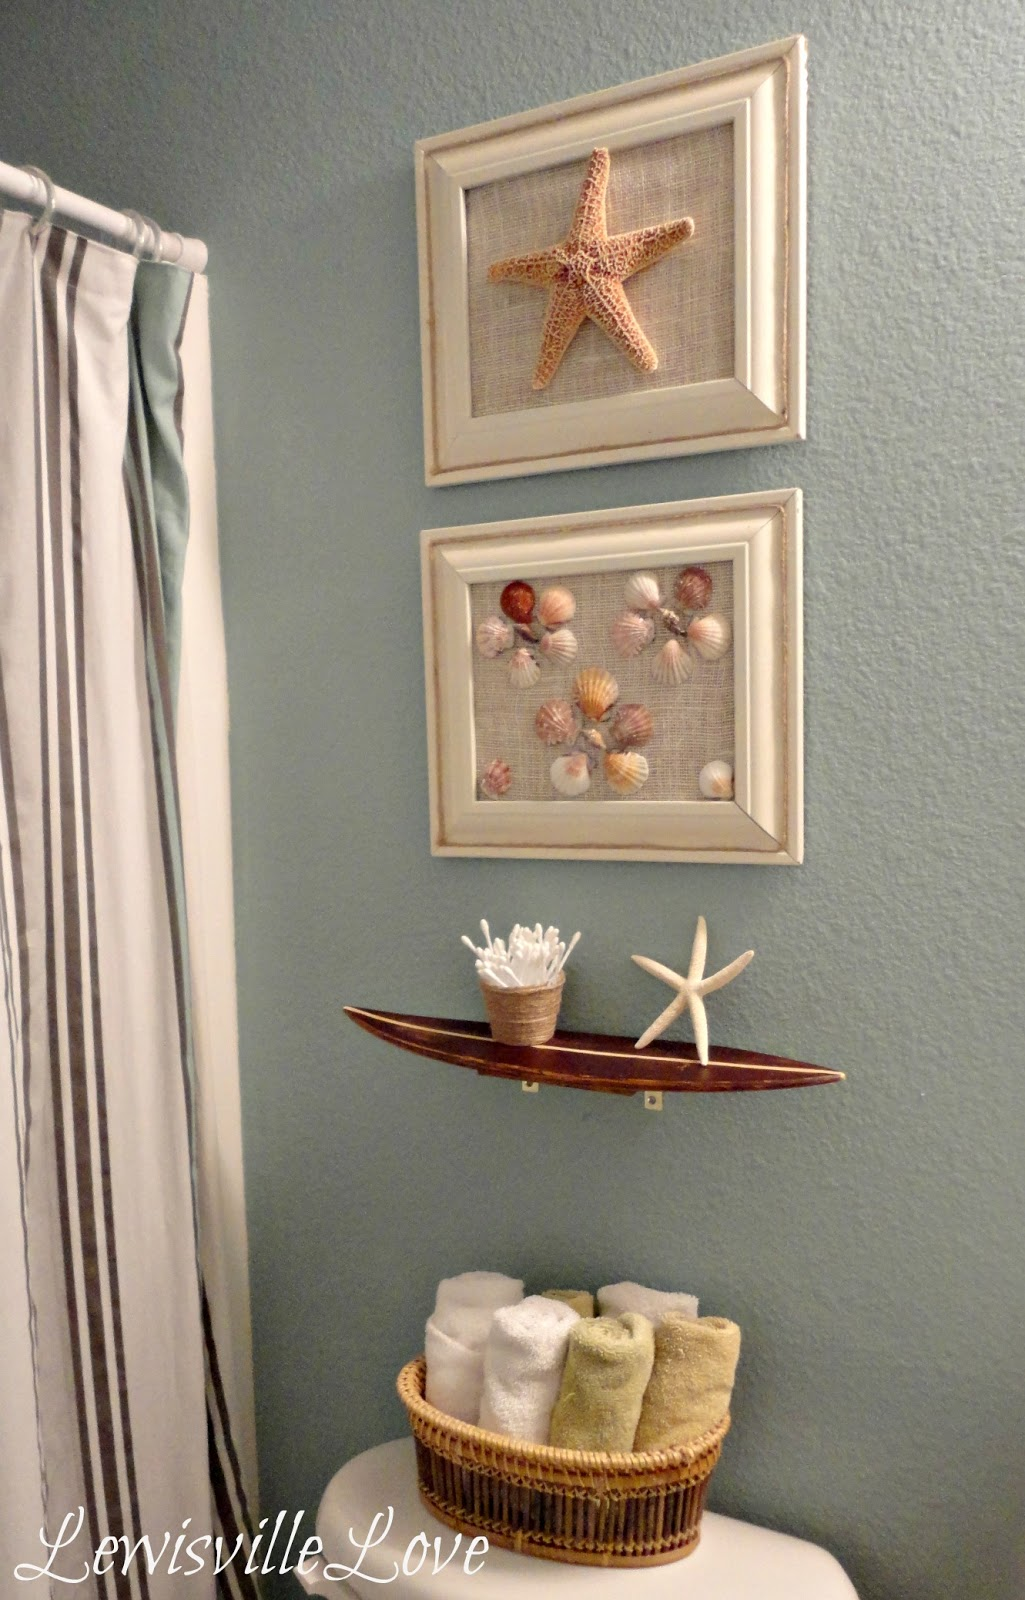 Bathroom Beach Ideas : Lewisville love beach theme bathroom reveal